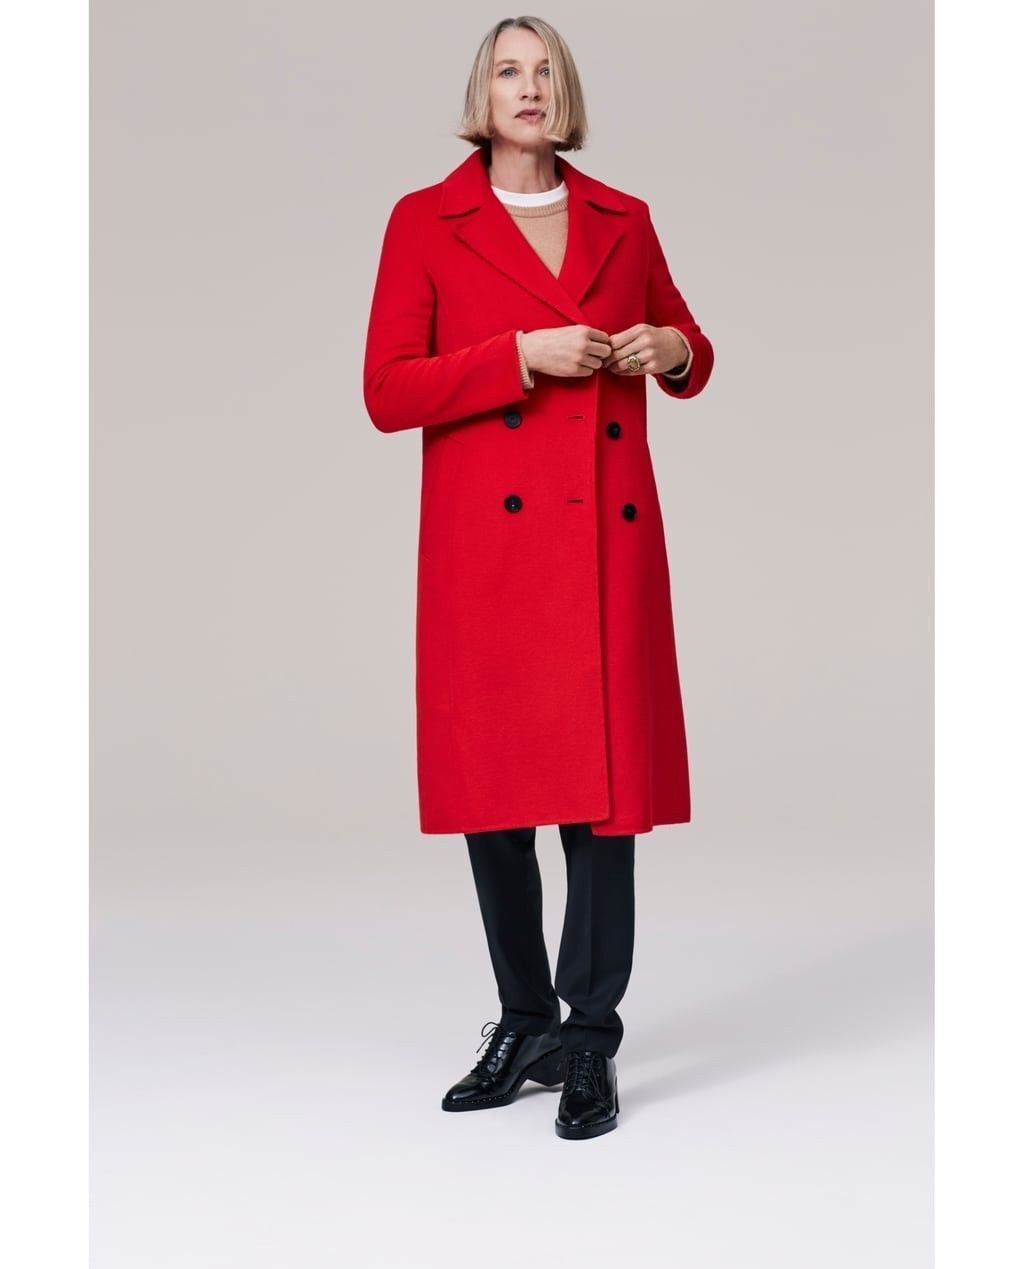 BNWT ZARA LONG CredVER COAT LAPEL COLLAR RED SIZE S REF.7522 247 BLOGGERS